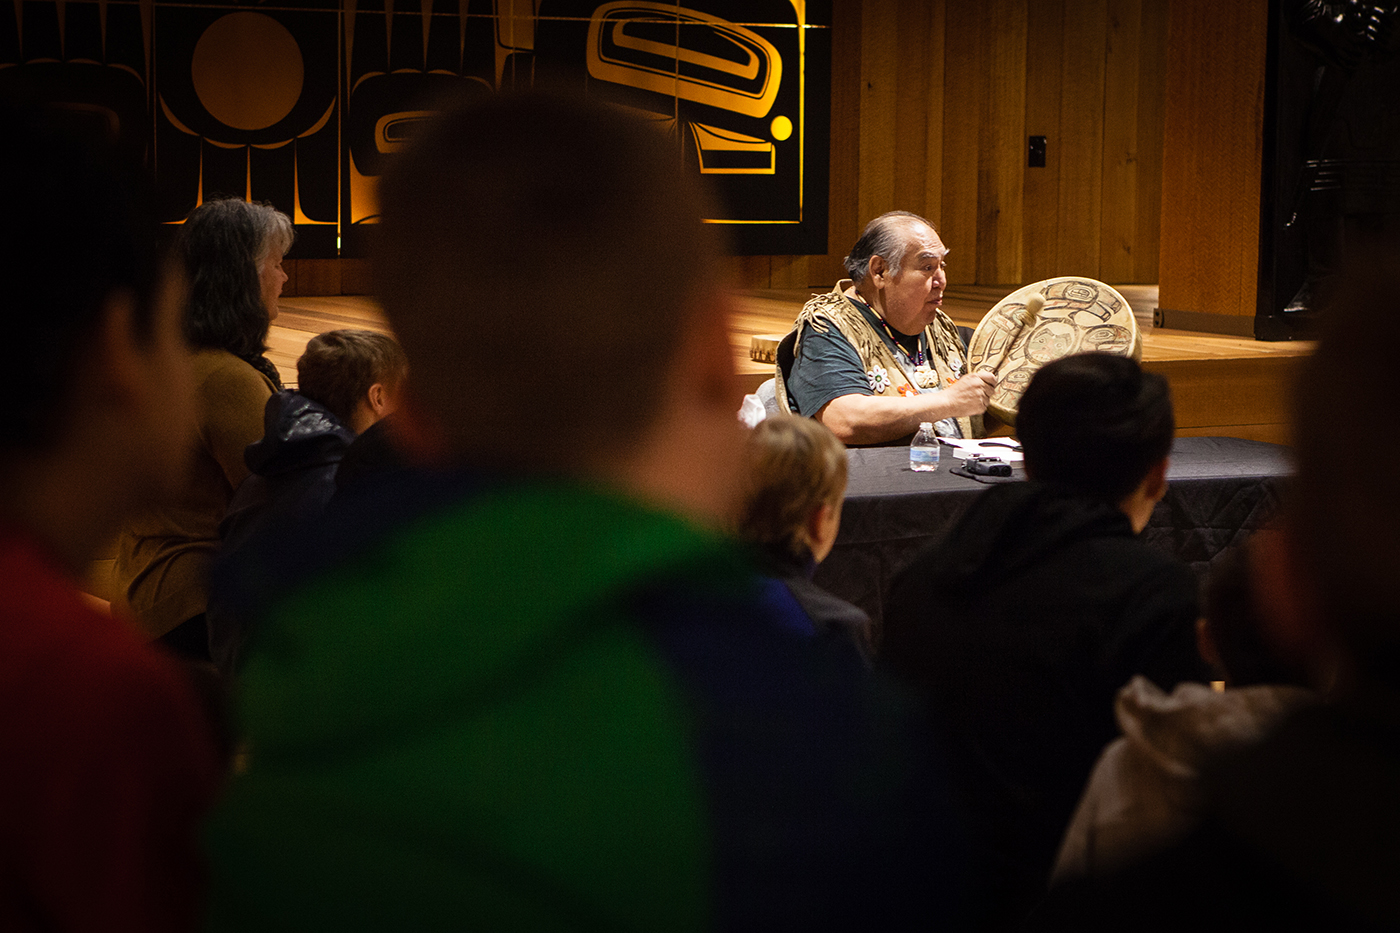 Tlingit elder David Katzeek reveals the history and knowledge embedded in Tlingit place names